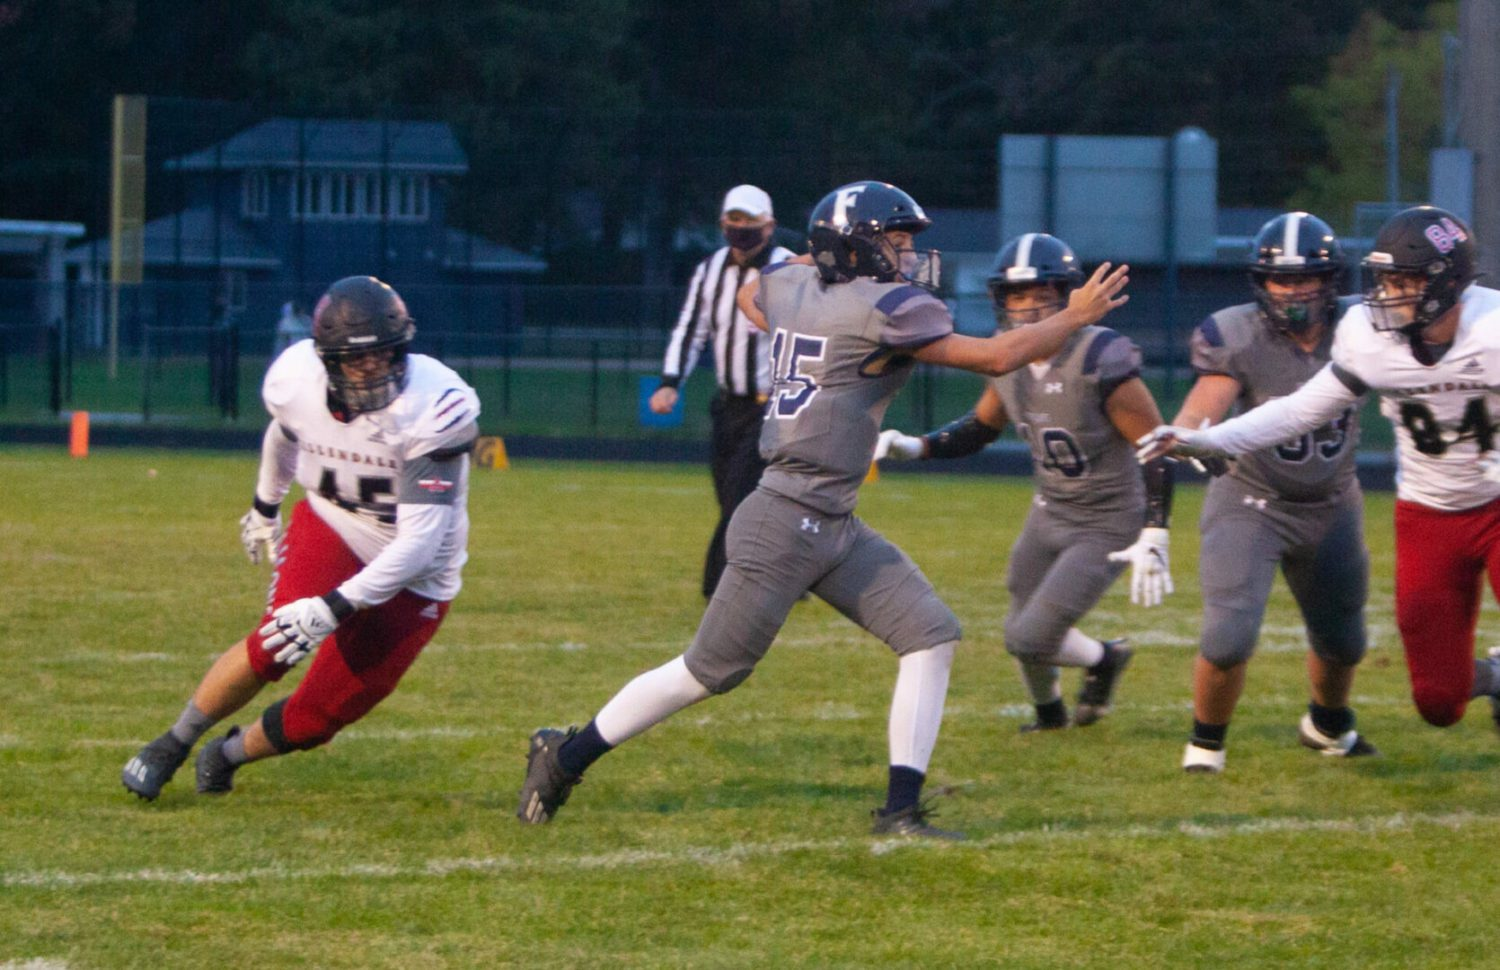 Fruitport puts up a fight, but succumbs to big-play Allendale 45-28 in the first game between the teams